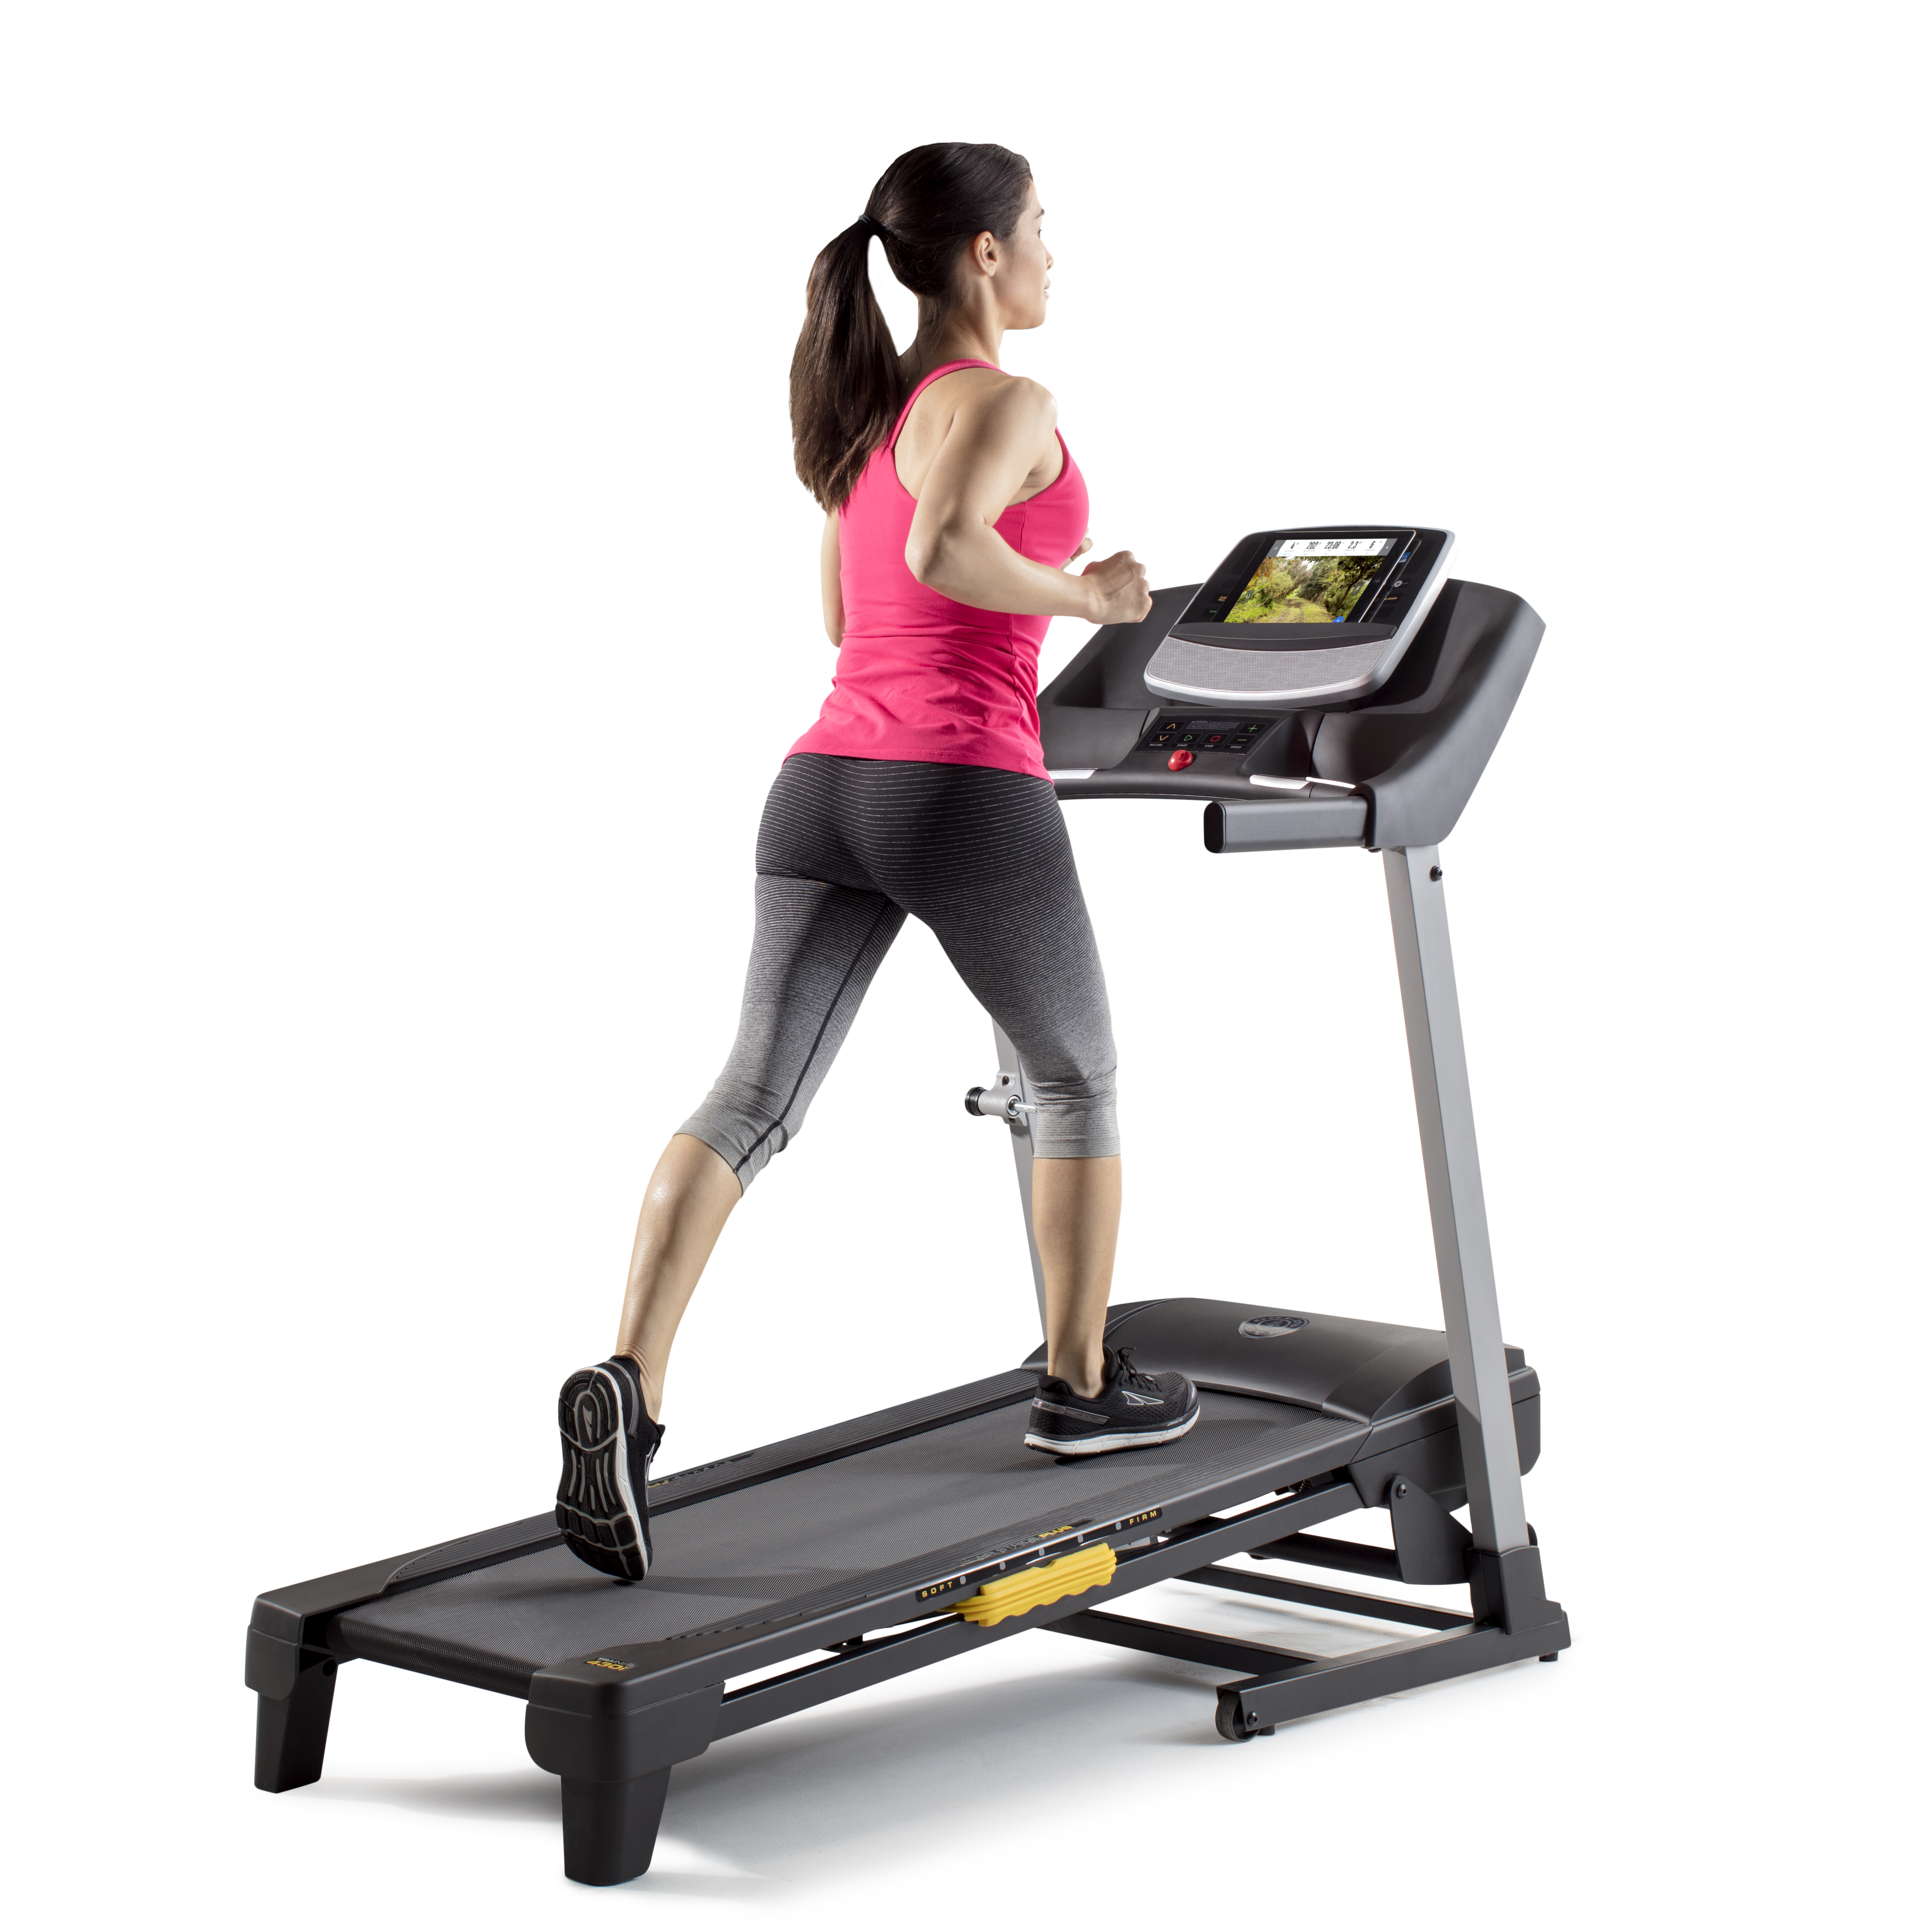 Gold's Gym Trainer 430i Treadmill with Easy Assembly with LCD Display